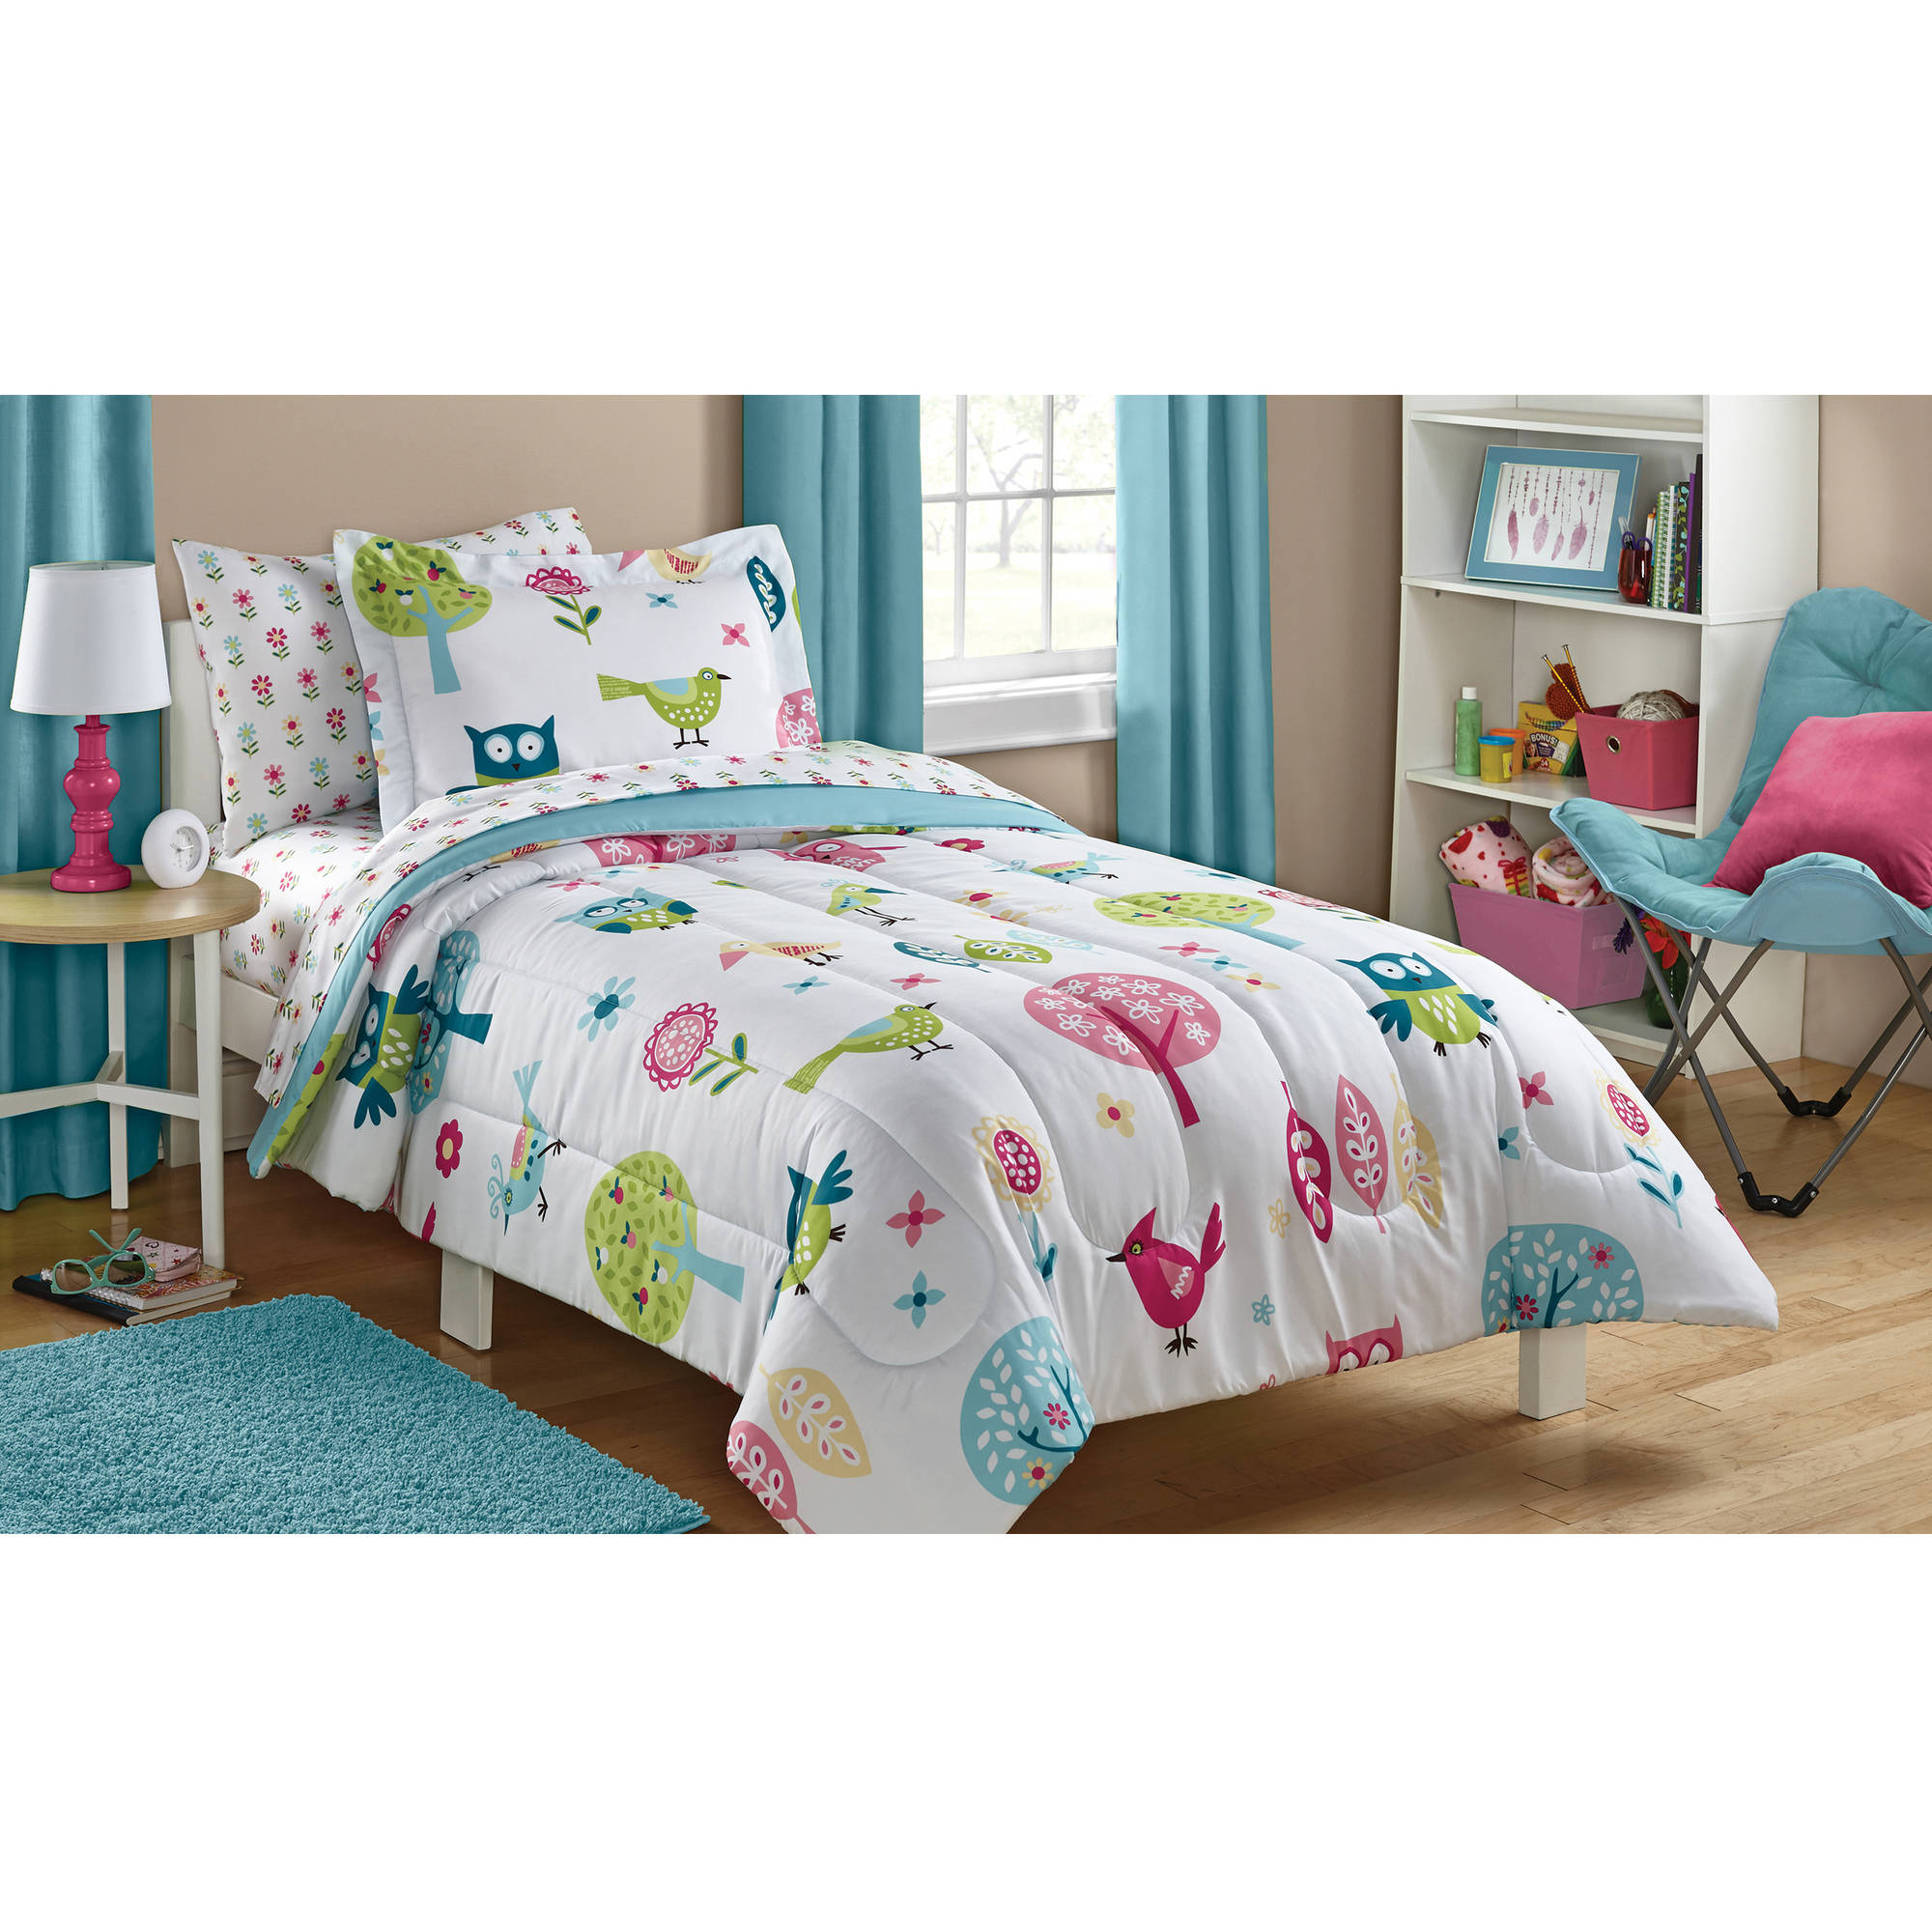 Mainstays Kids Woodland Bed in a Bag Bedding Set by Keeco, LLC